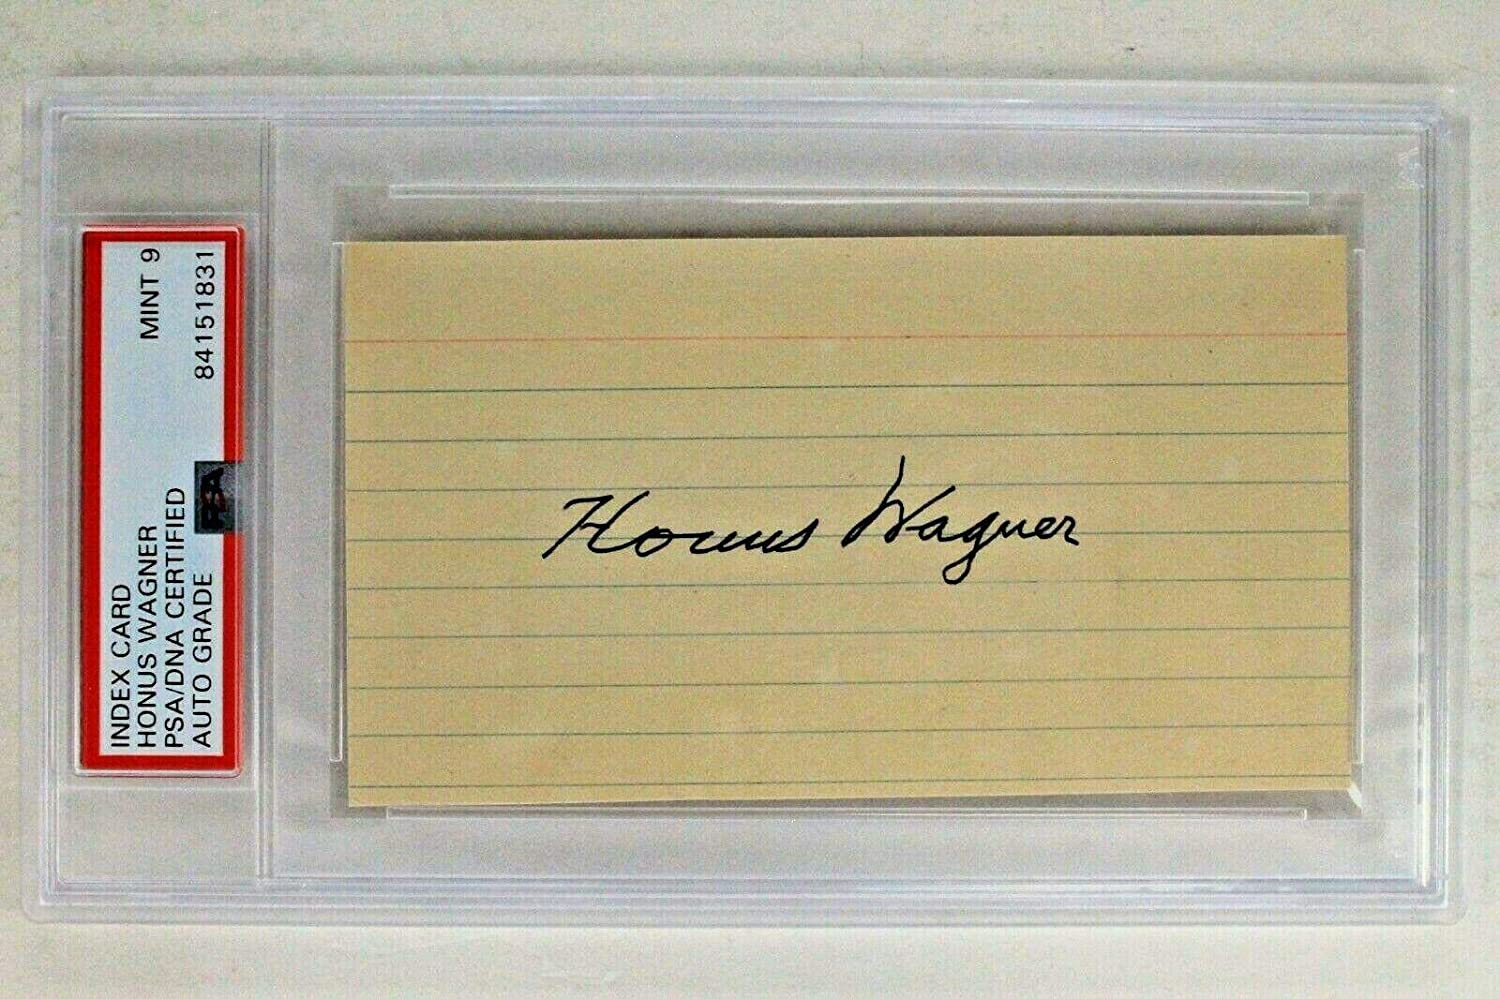 Honus Wagner (d.1955) HOF Autographed Signed 3x5 Index Card Pirates JSA PSA 9 - MLB Cut Signatures